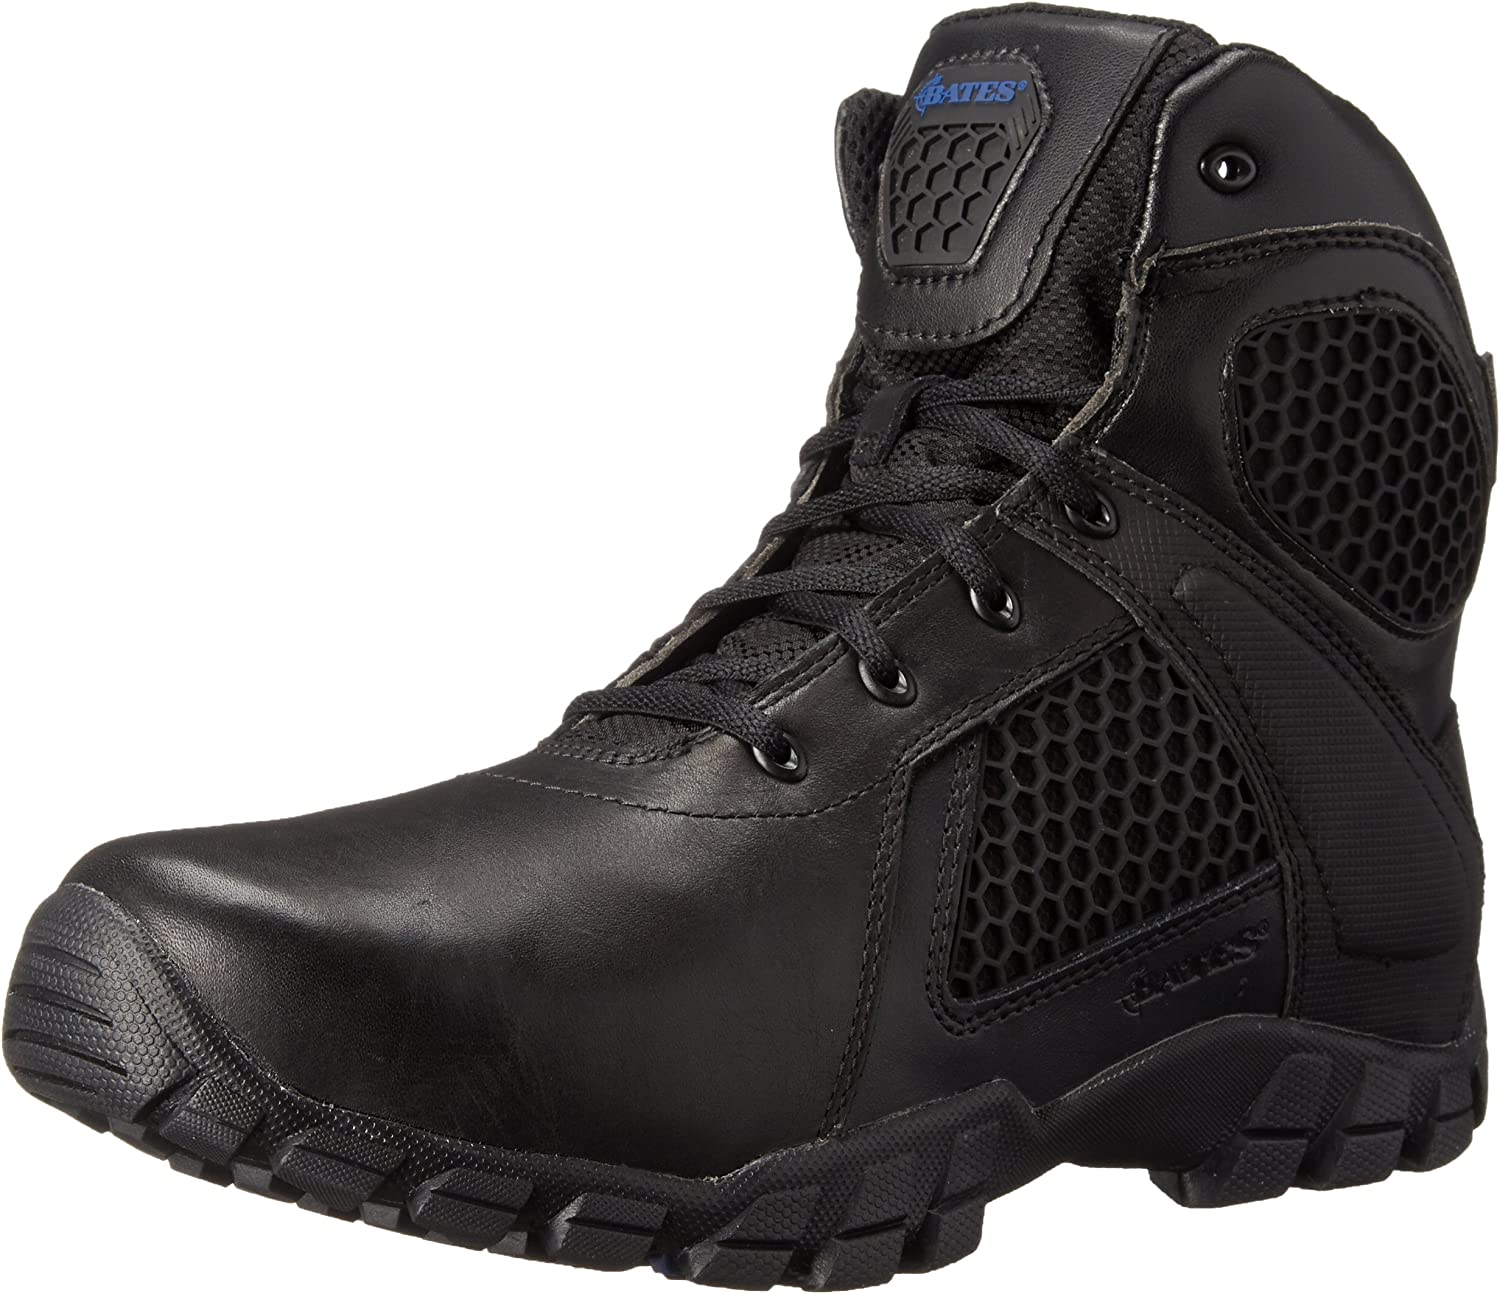 sneakers for cheap super quality various design Amazon.com: Bates Men's 6 Inch Strike Side Zip Waterproof Tactical ...